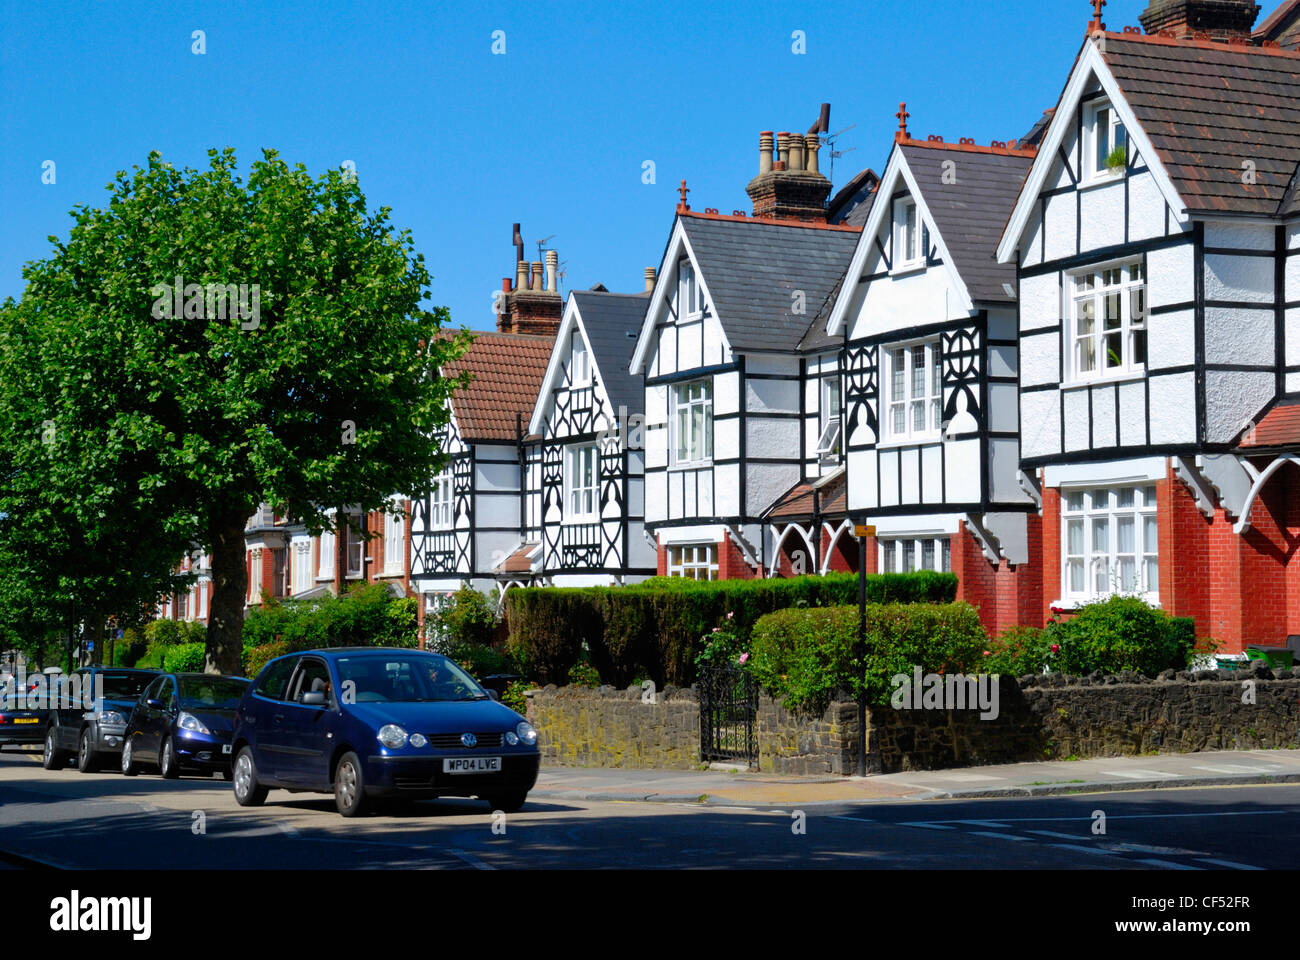 Mock Tudor houses in Muswell Hill Road. - Stock Image